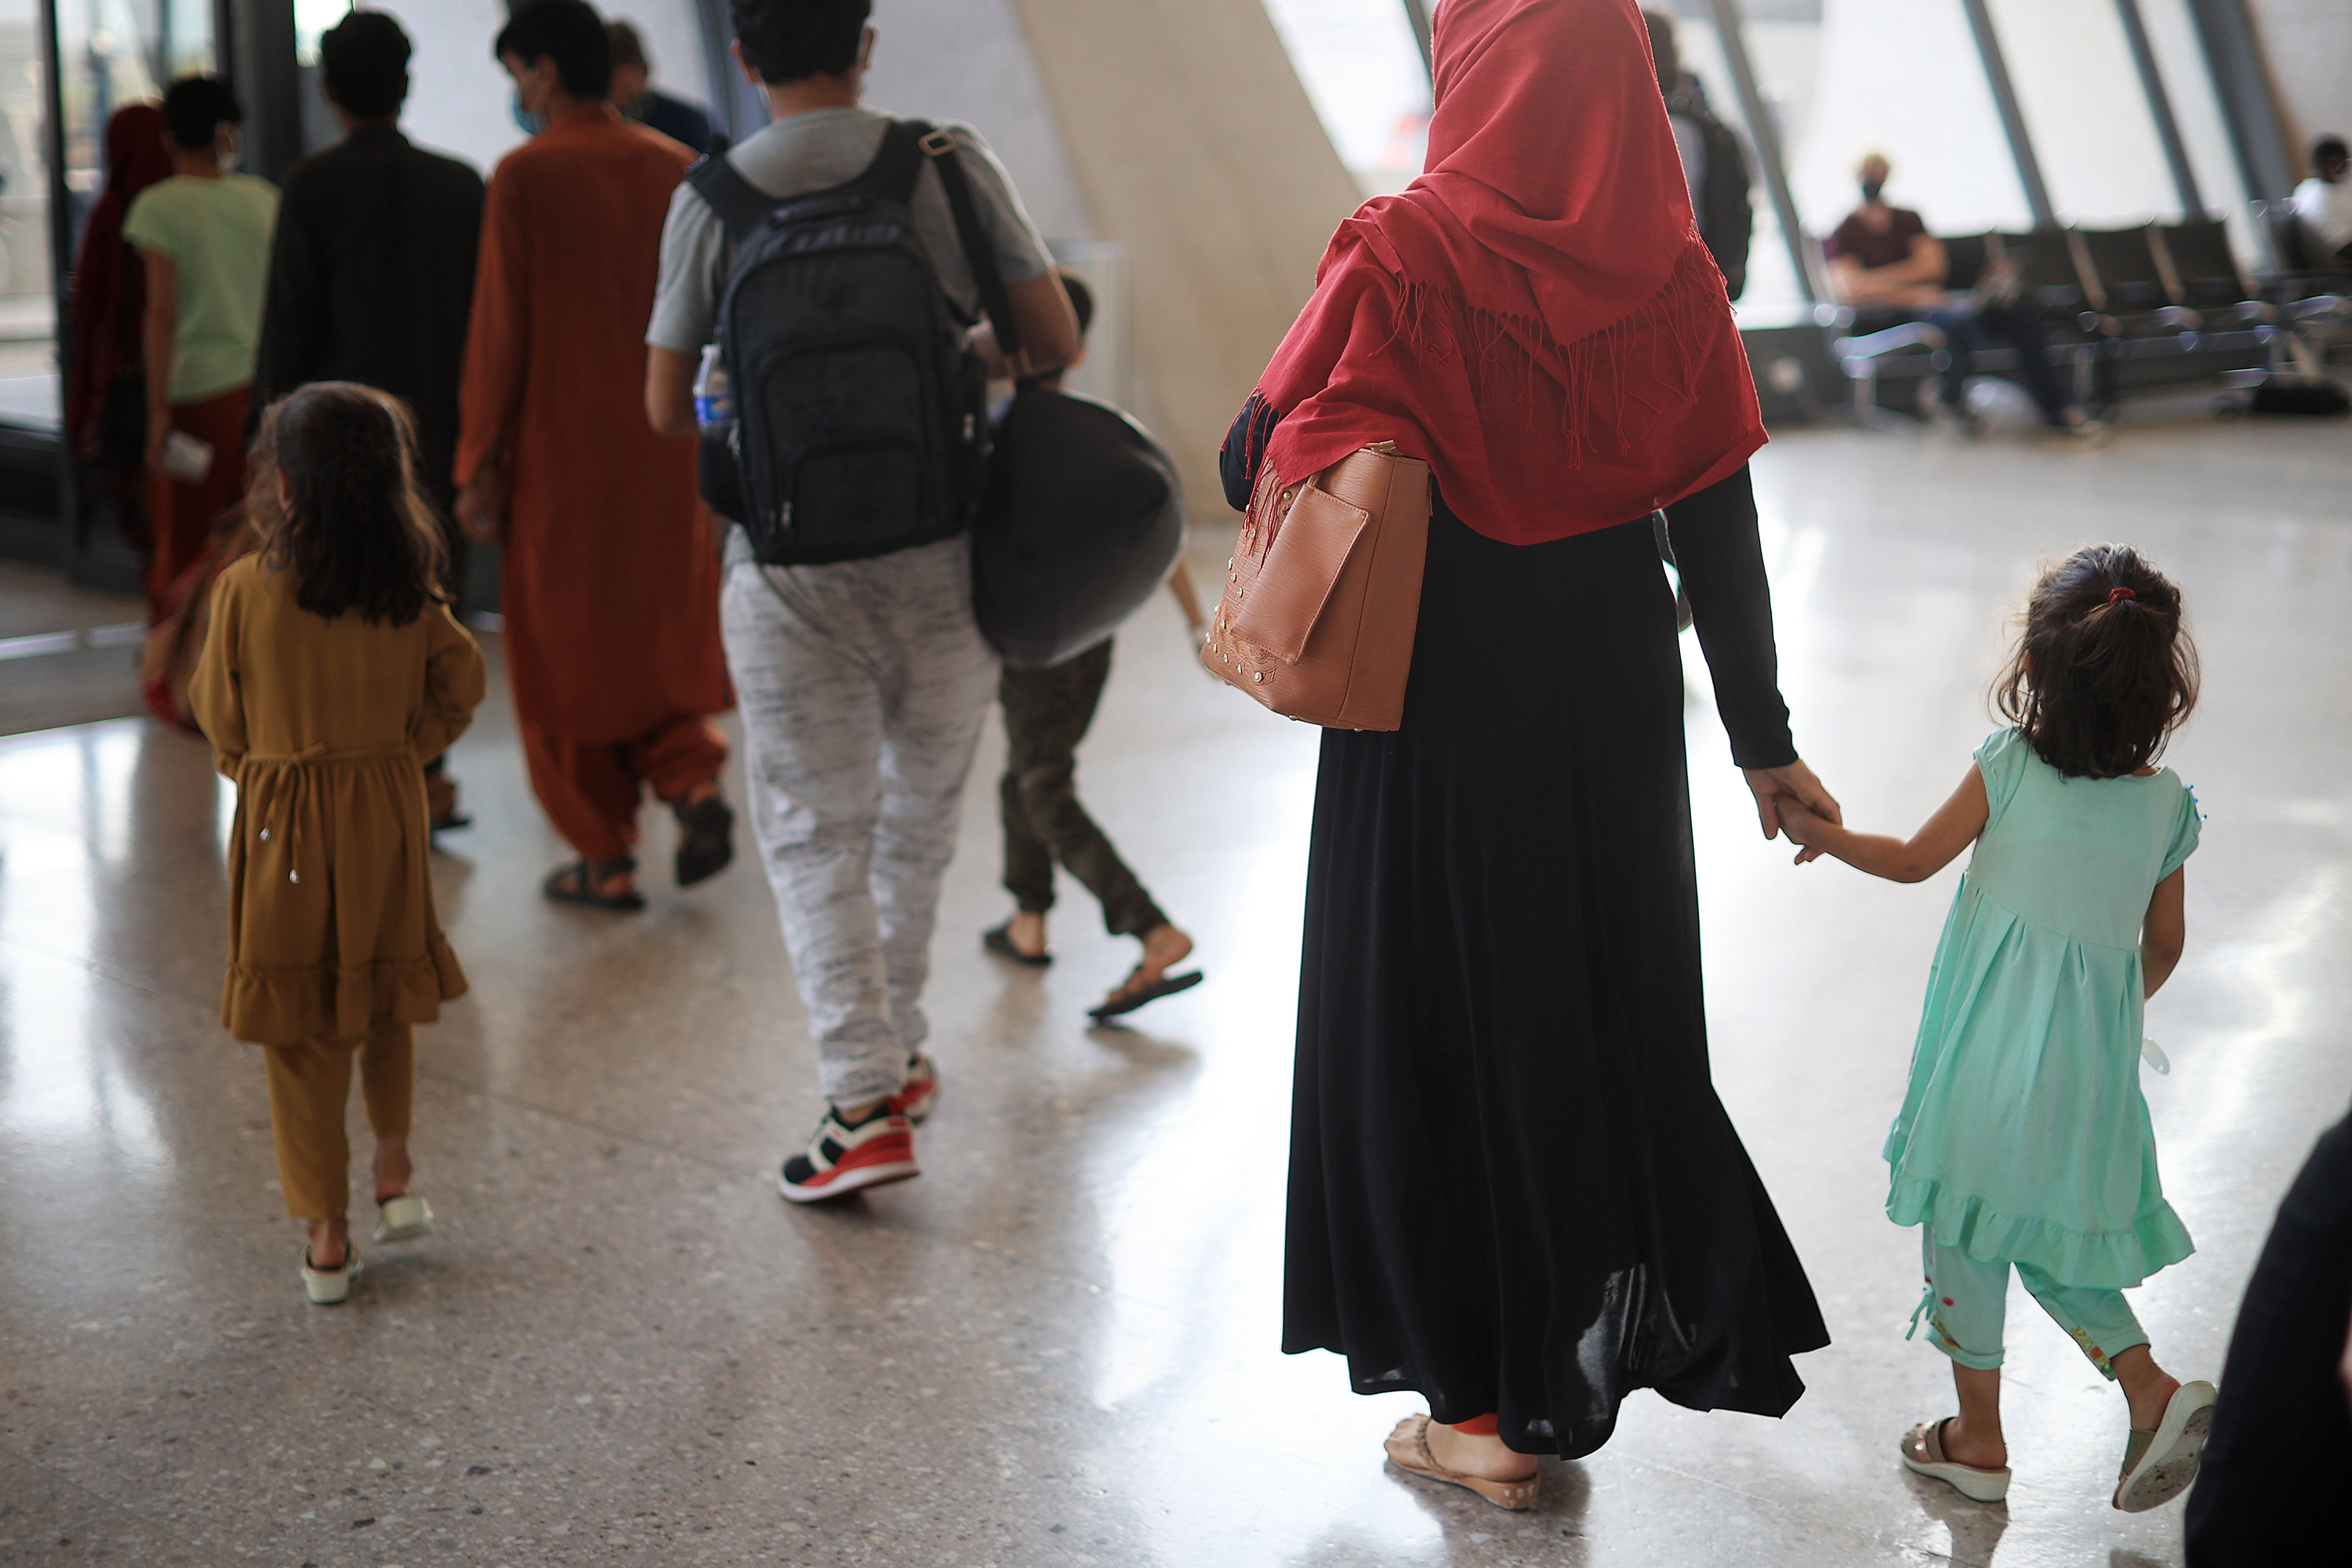 Refugees arrive at Dulles International Airport after being evacuated from Kabul on August 27 in Dulles, Virginia.